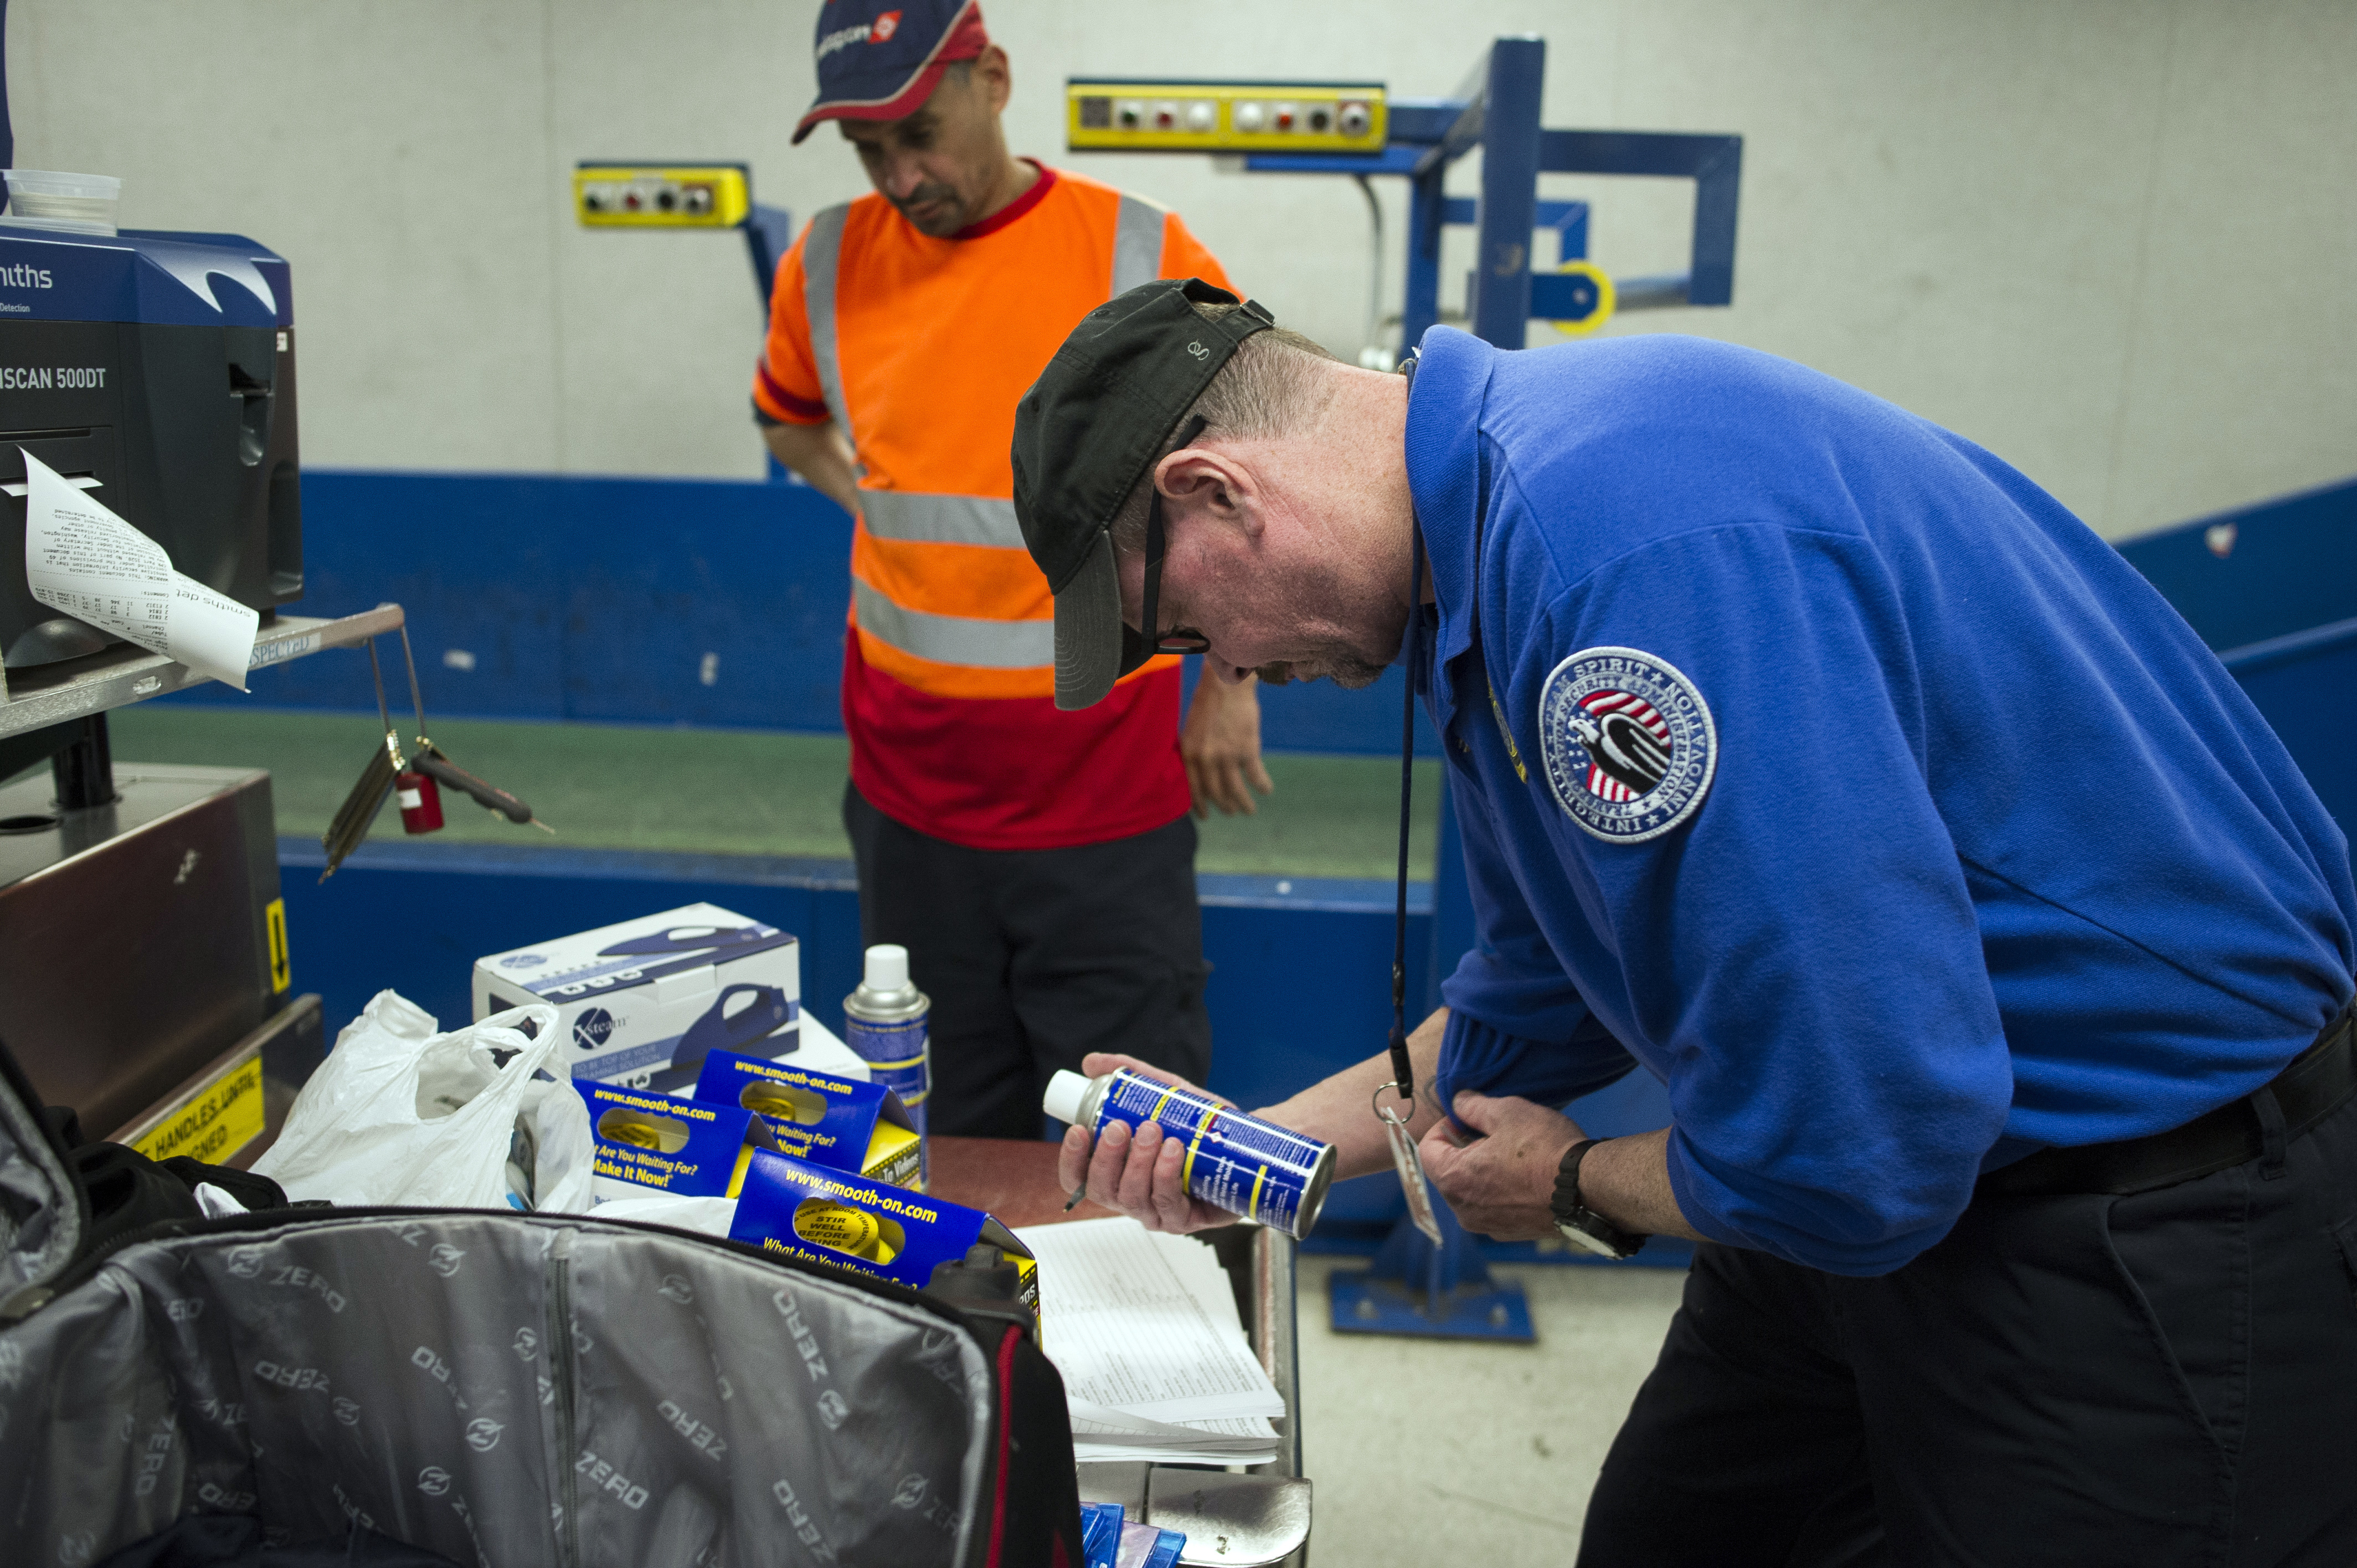 A Transportation Security Adminstration (TSA) officer inspects a can which was packed in a suitcase flagged for a seconday inspection at Dulles International Airport in Dulles, Va., March 26, 2019.